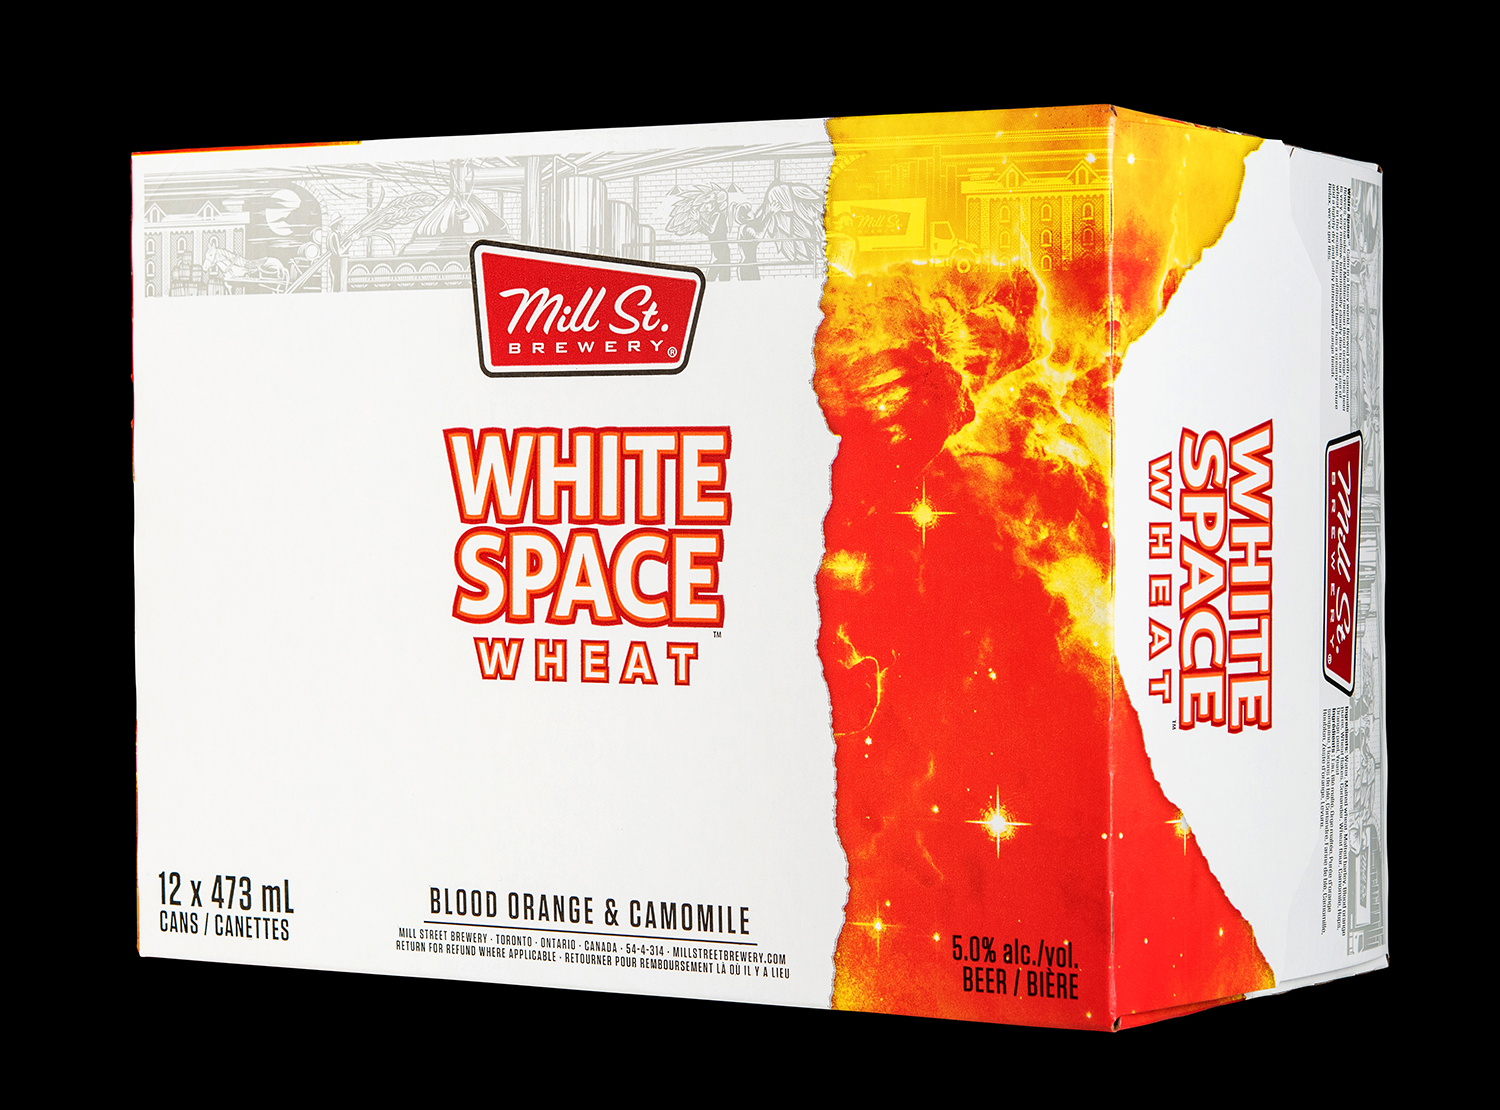 Mill Street Brewing Branding and Packaging 2018 Seasonal Release White Space Wheat